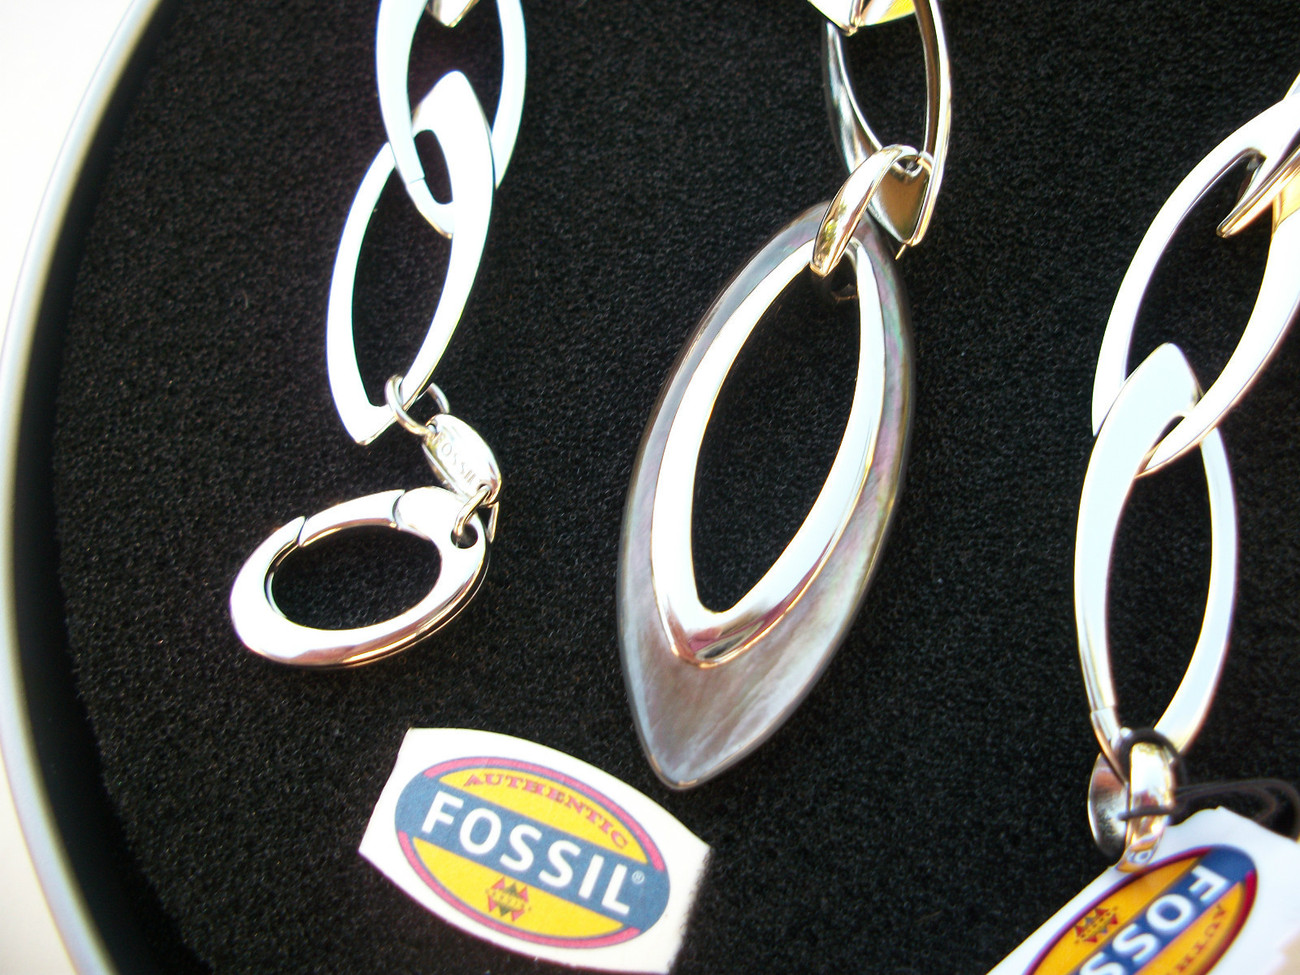 FOSSIL Brand-Mother of Pearl Stainless Steel Link Necklace- Gift Tin - Italy